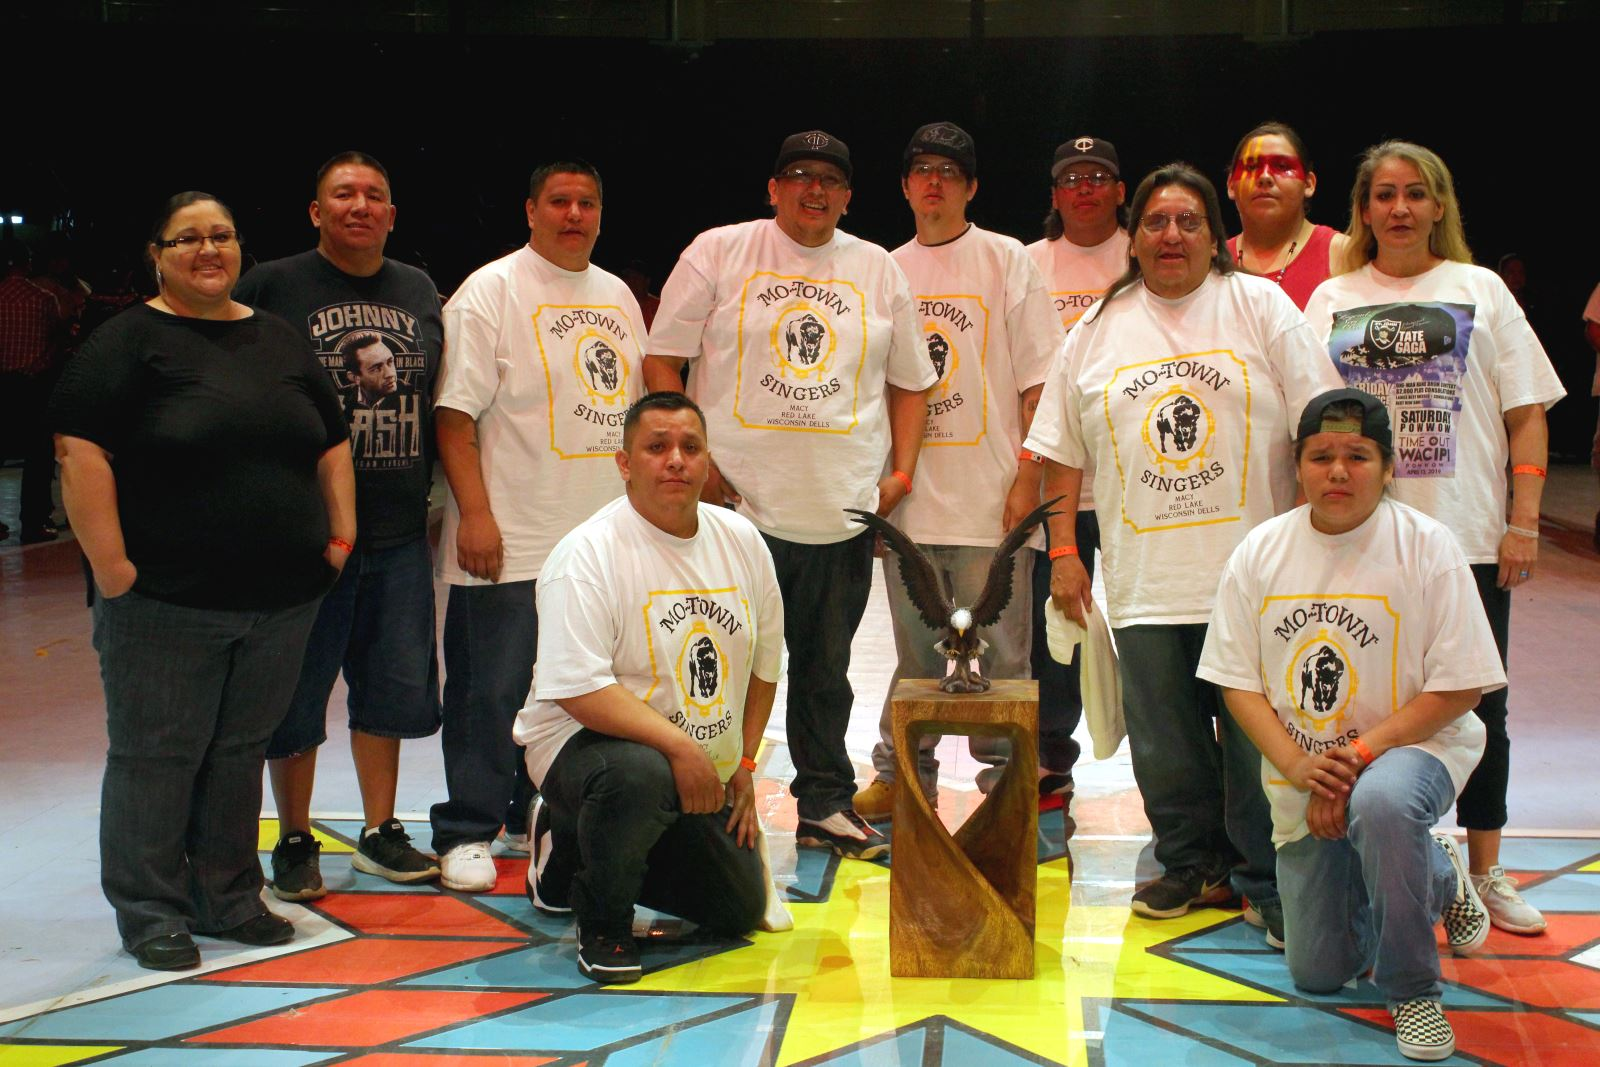 SOUTHERN DRUM CONTEST WINNERS